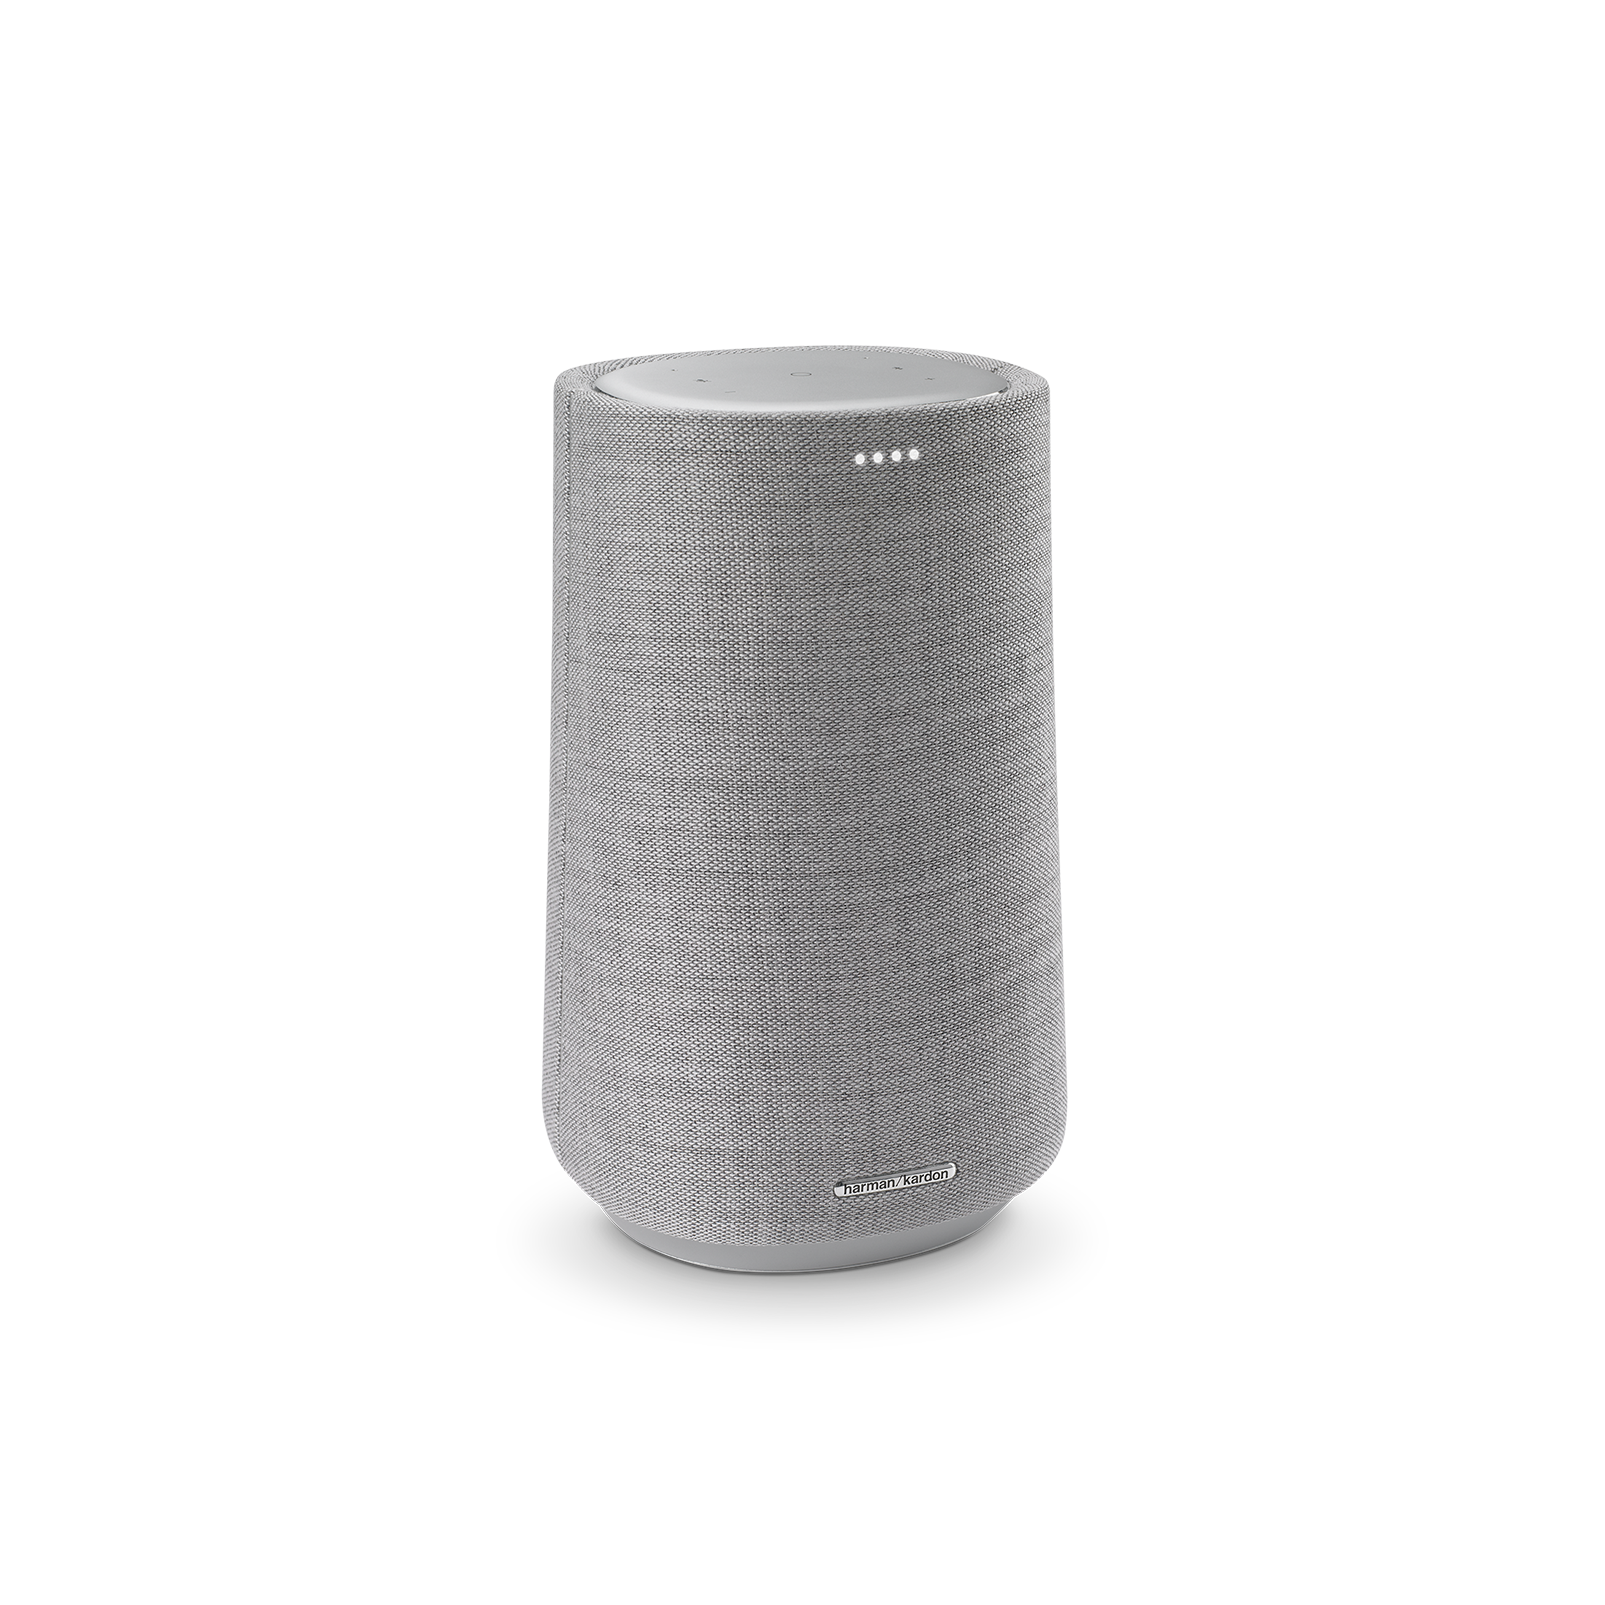 Harman Kardon Citation 100 MKII - Grey - Bring rich wireless sound to any space with the smart and compact Harman Kardon Citation 100 mkII. Its innovative features include AirPlay, Chromecast built-in and the Google Assistant. - Hero